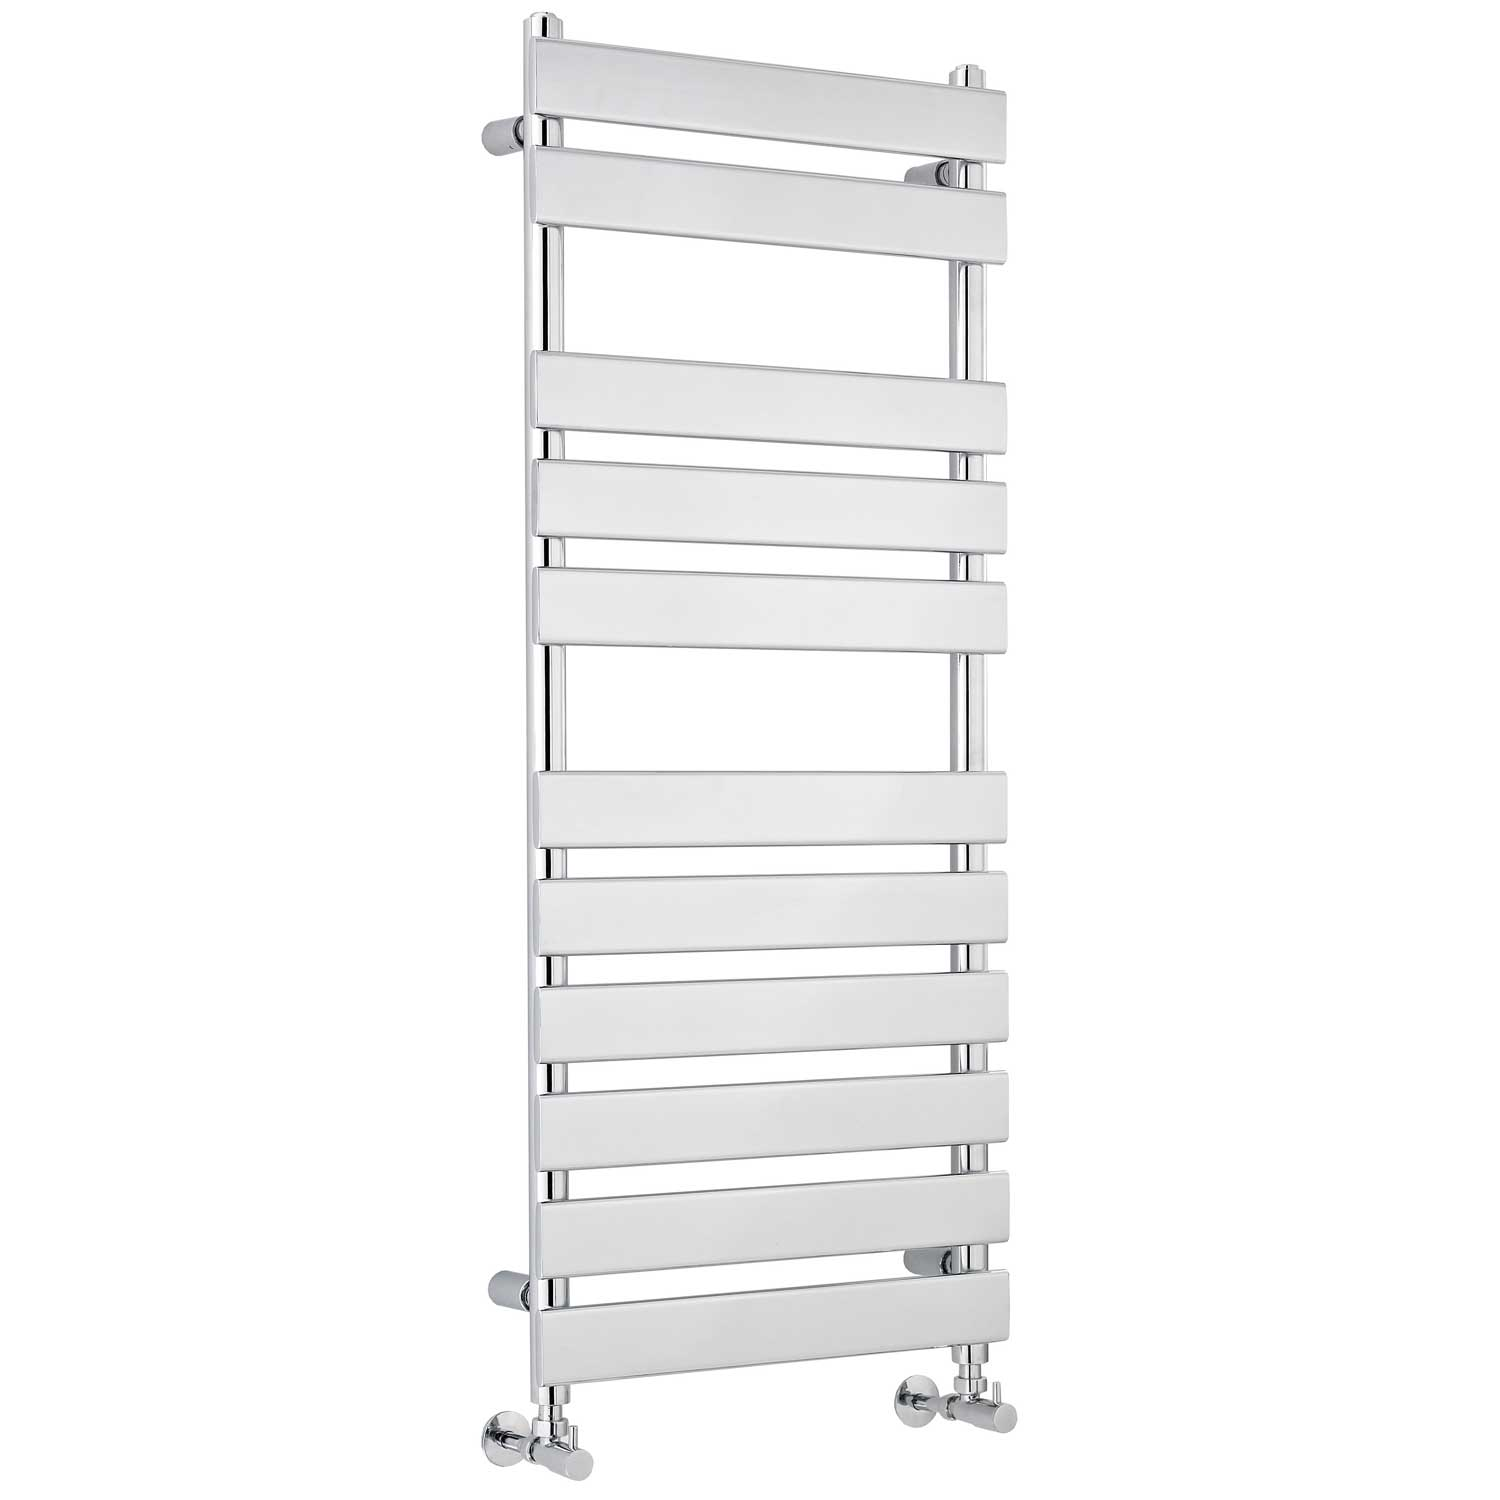 Hudson Reed Piazza Flat Panel Heated Towel Rail 1200mm H x 500mm W Chrome-0